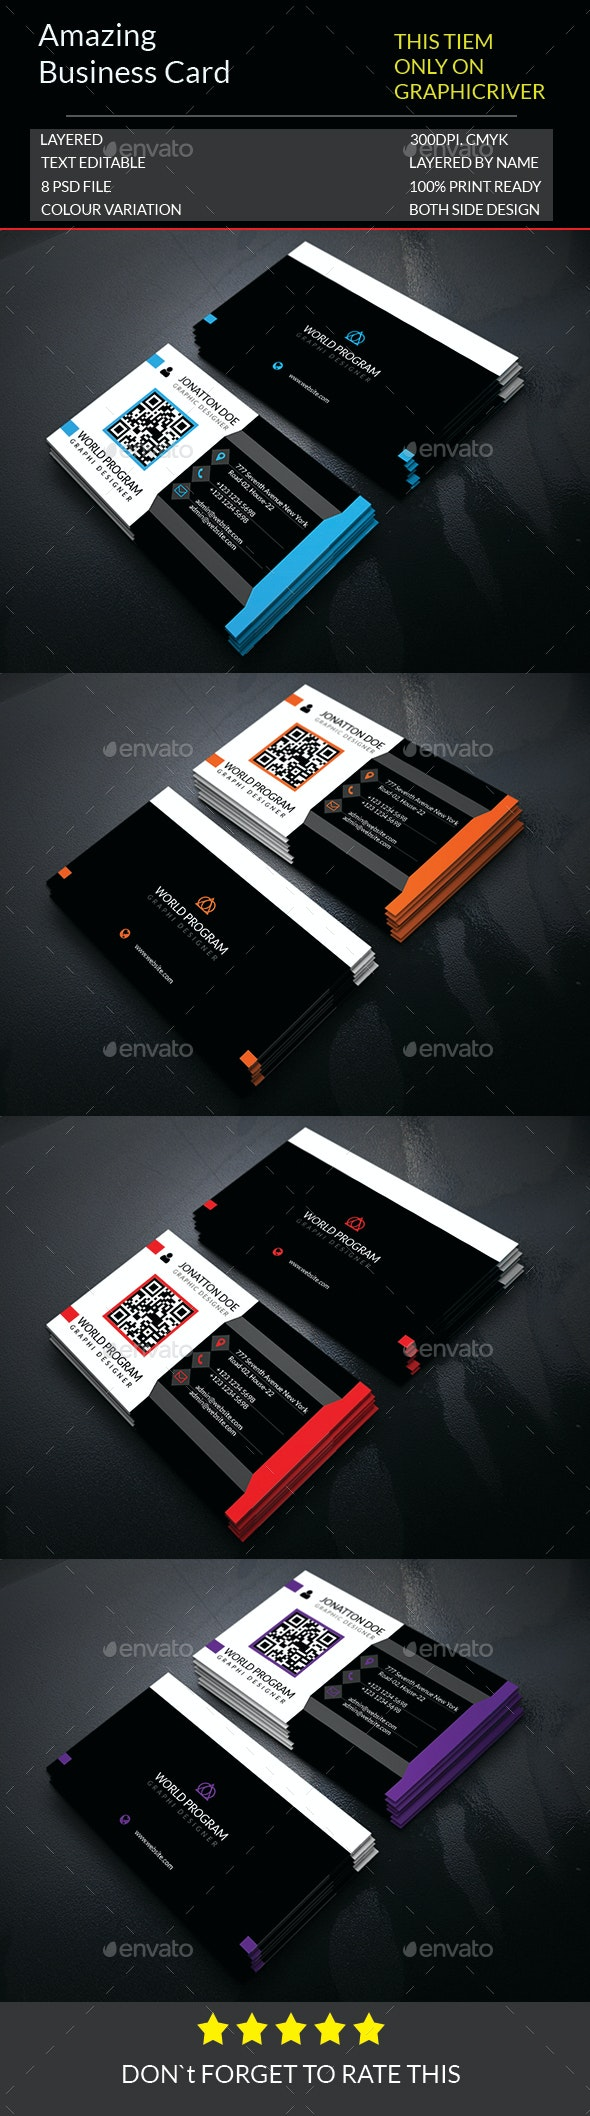 Amazing Business Card Template.163 - Business Cards Print Templates